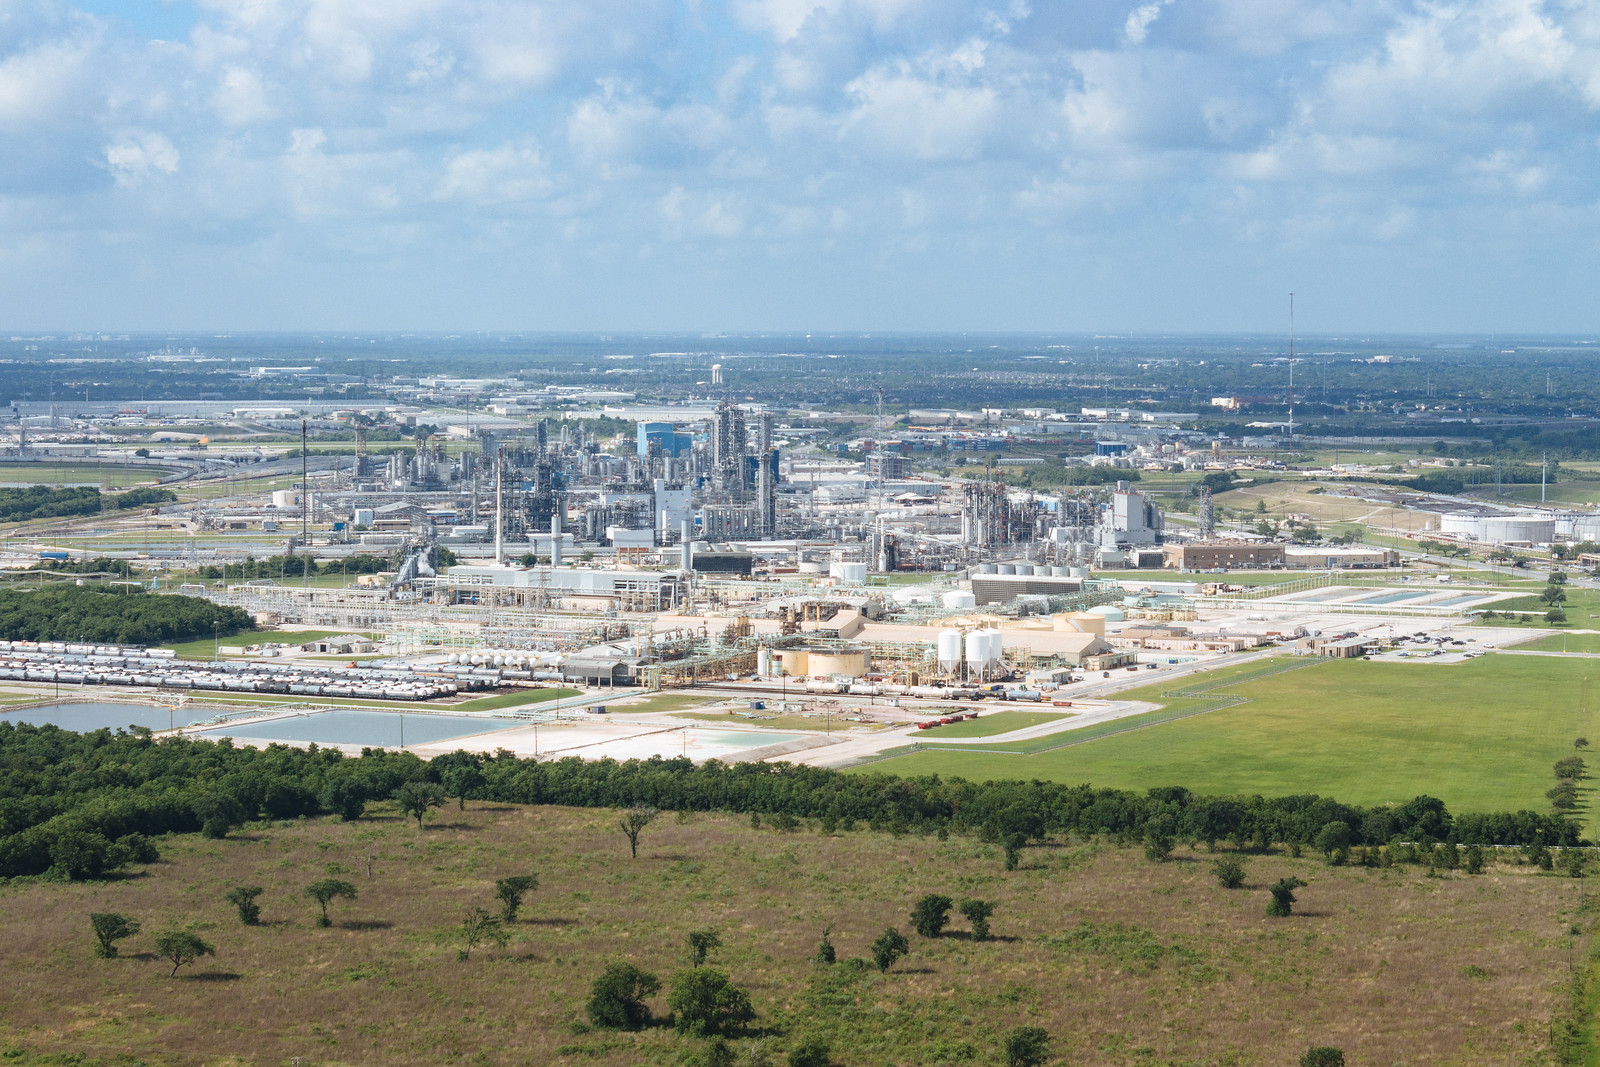 A large complex of oil refineries